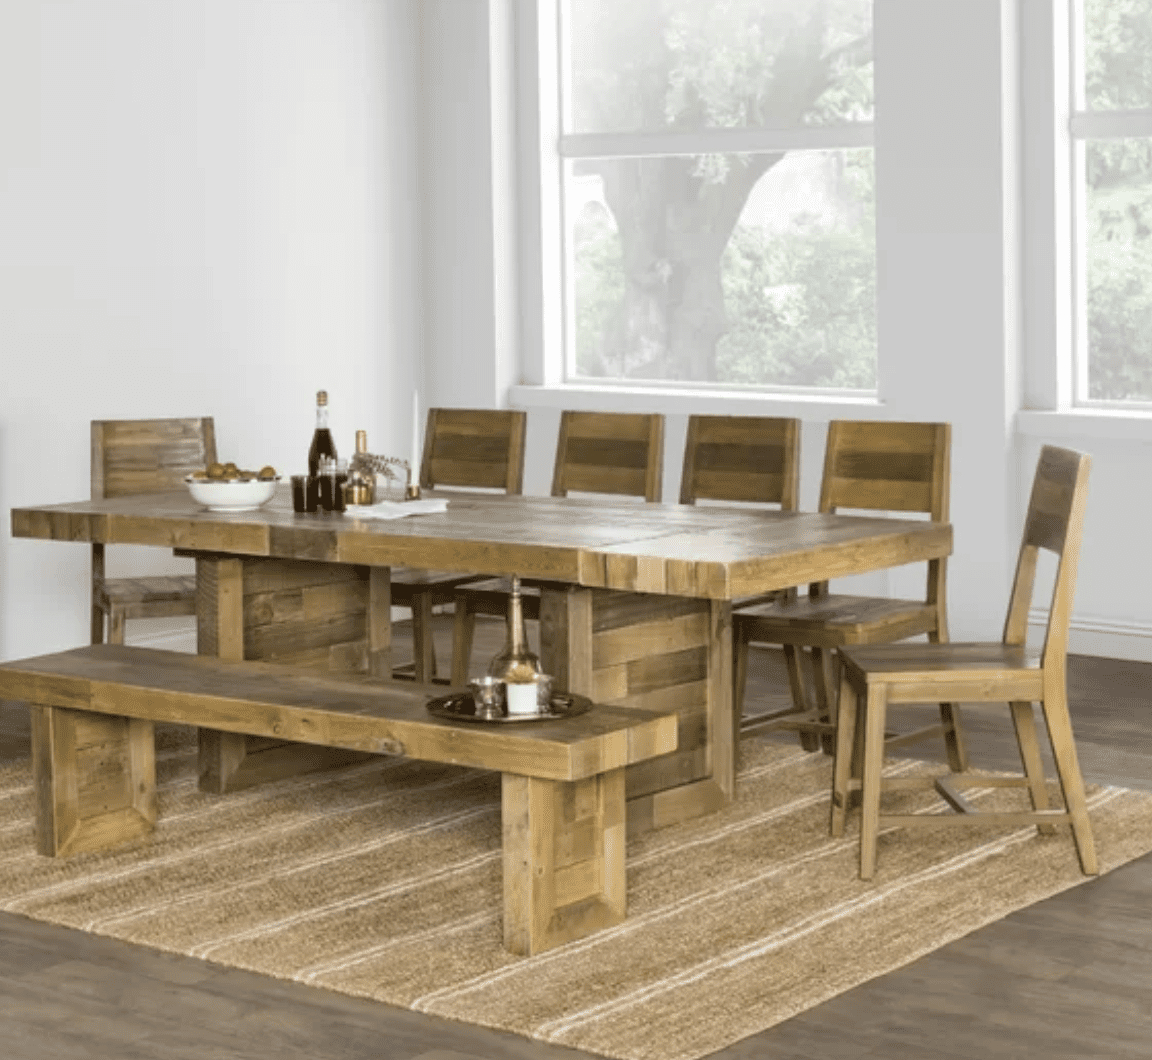 The 9 Best Dining Room Tables Of 2020 Throughout Best And Newest Hewn Oak Lorraine Extending Dining Tables (View 13 of 25)